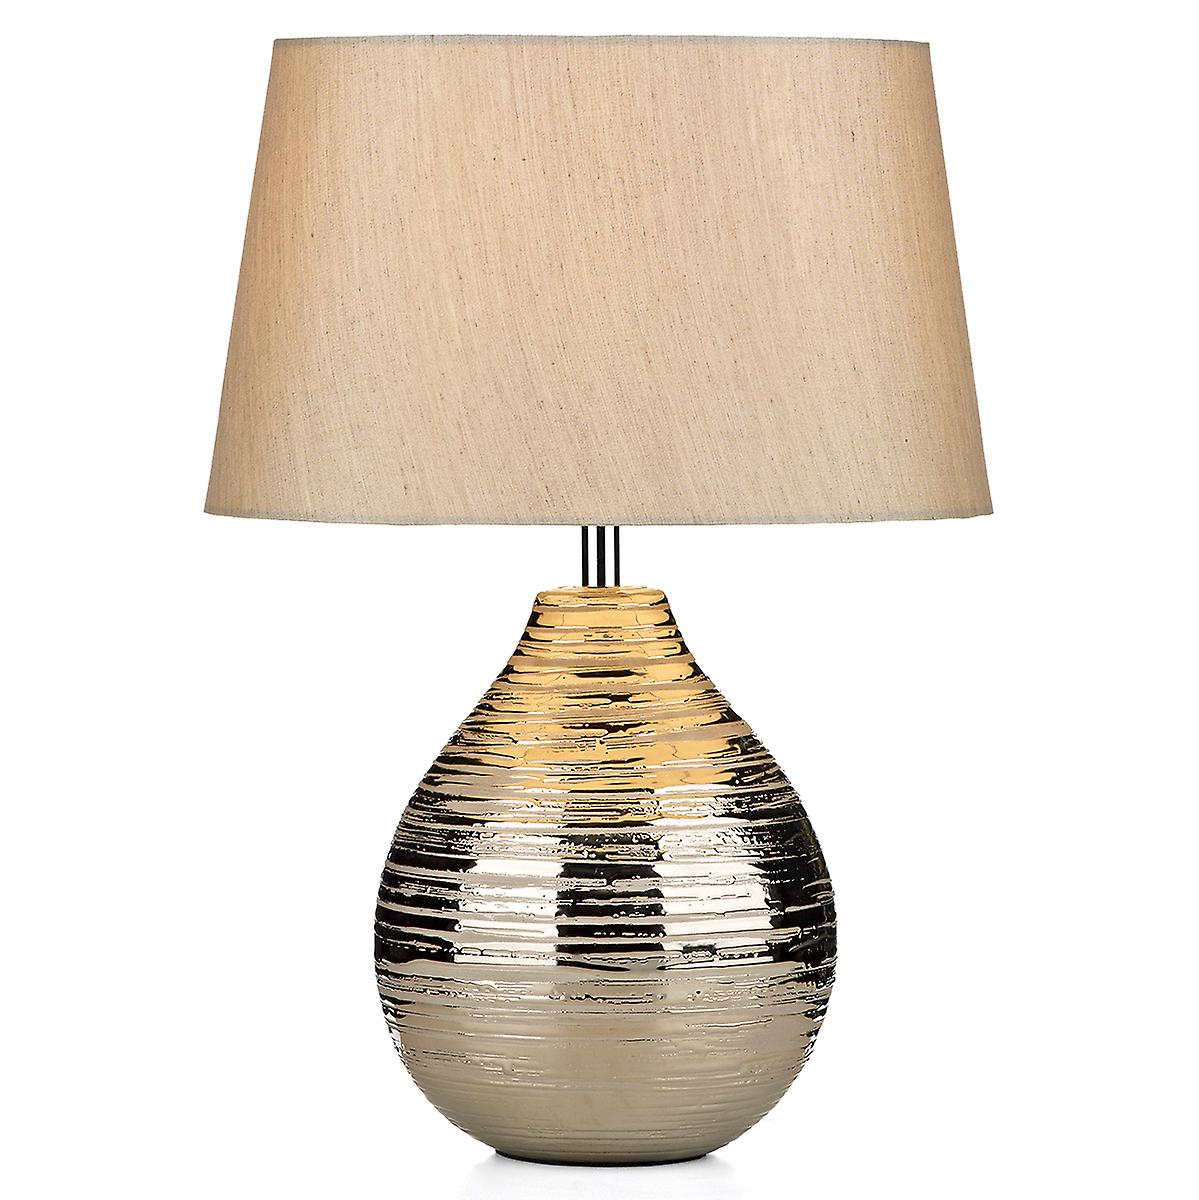 Dar GUS4032 Gustav Silver Ceramic Table Lamp With Silk Shade - 30cm